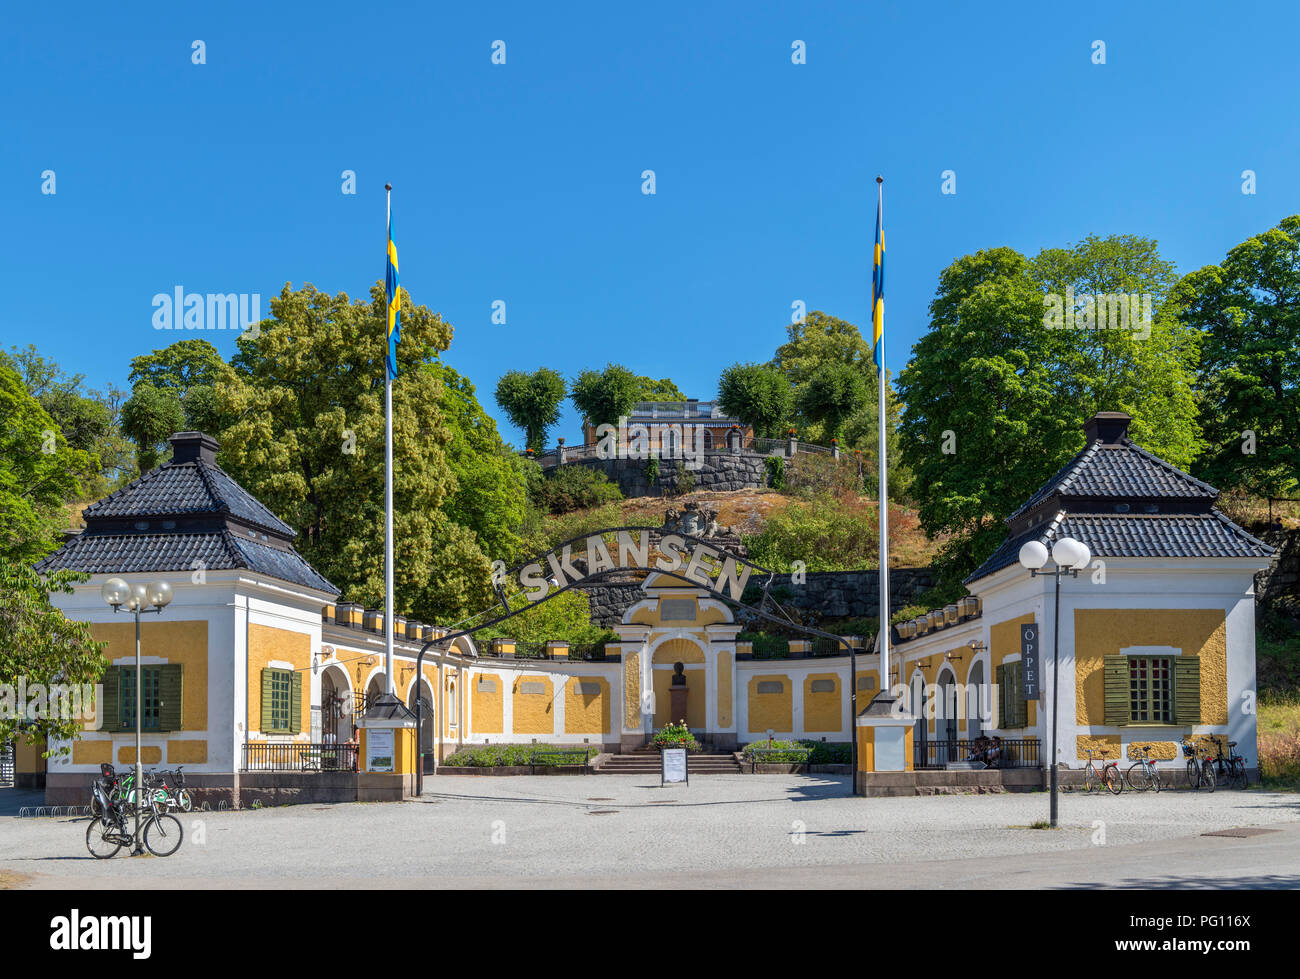 Entrance to Skansen open air museum, Djurgården, Stockholm, Sweden - Stock Image